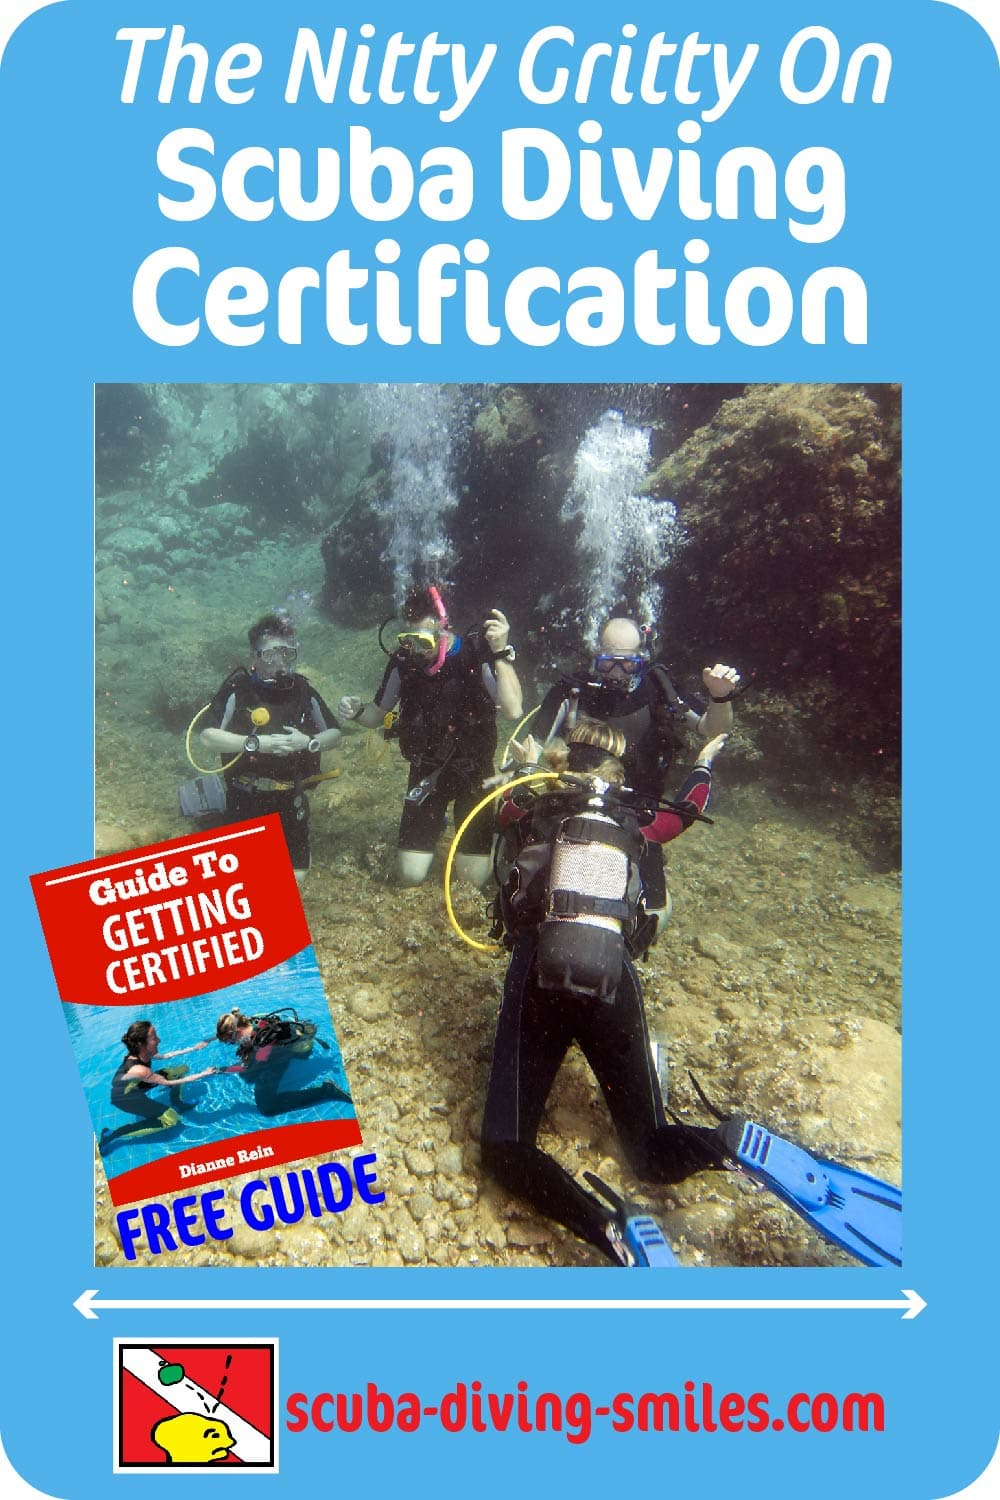 Scuba diving certification information